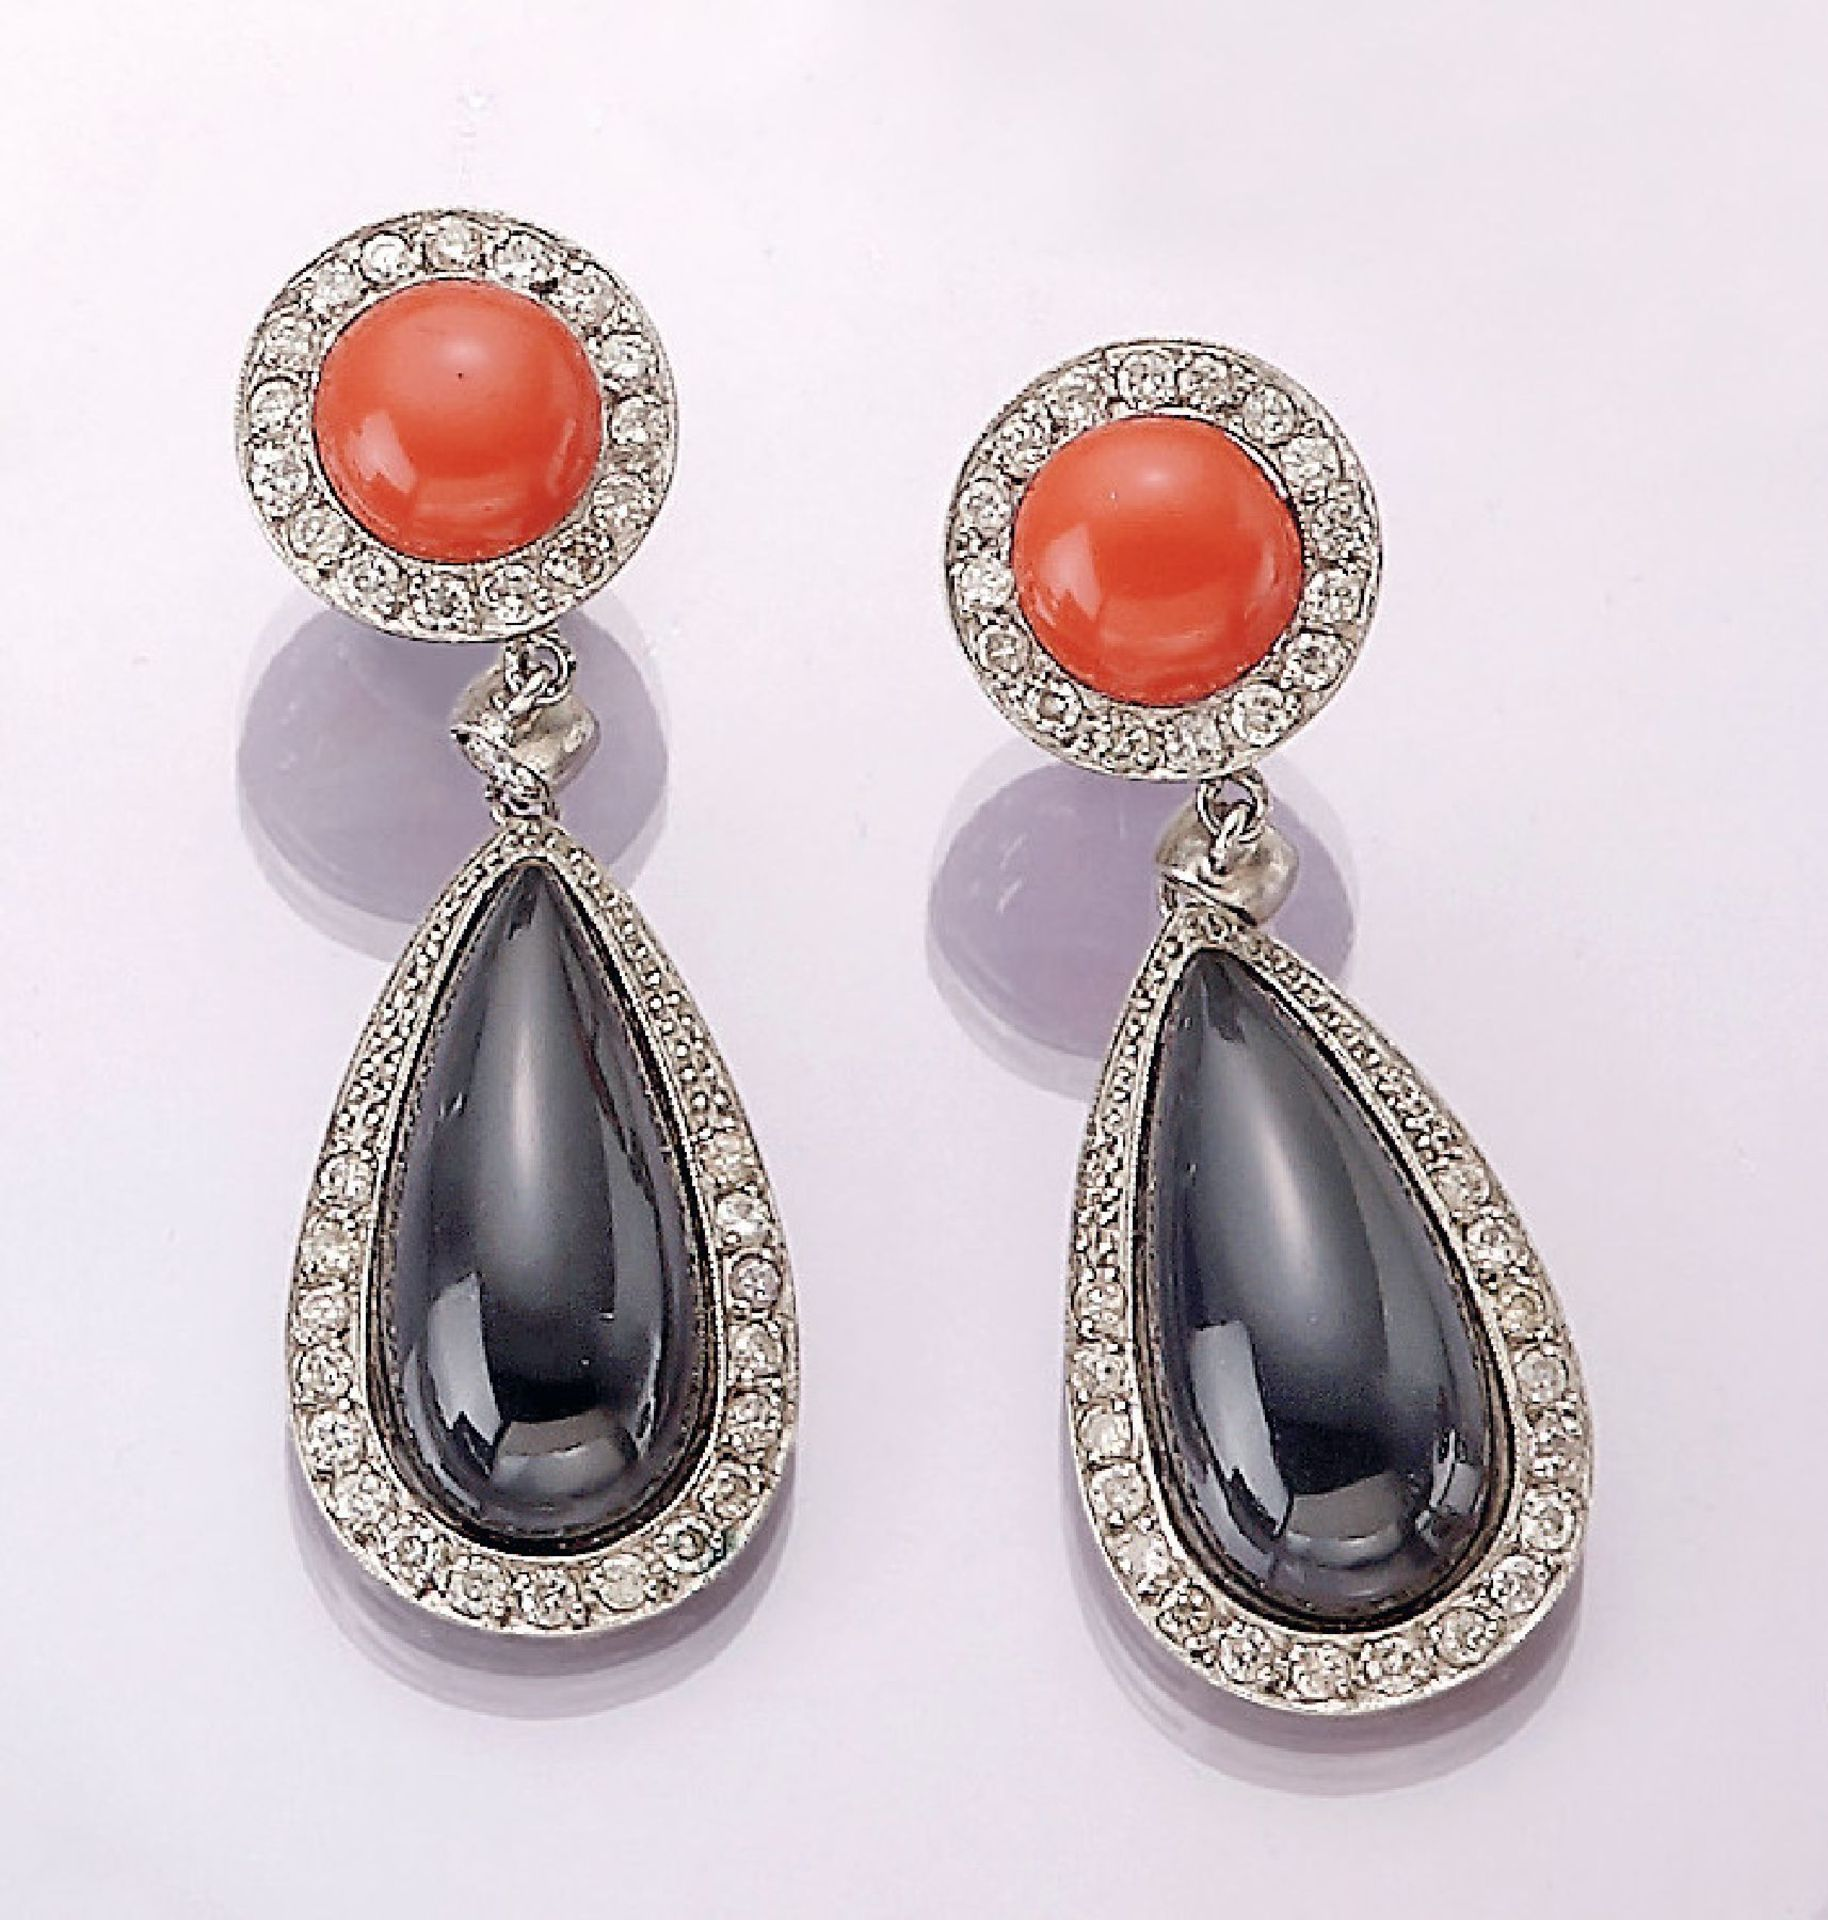 Los 31557 - Pair of 18 kt gold earrings with onyx, brilliants and coral , WG 750/000, each 1 round coral